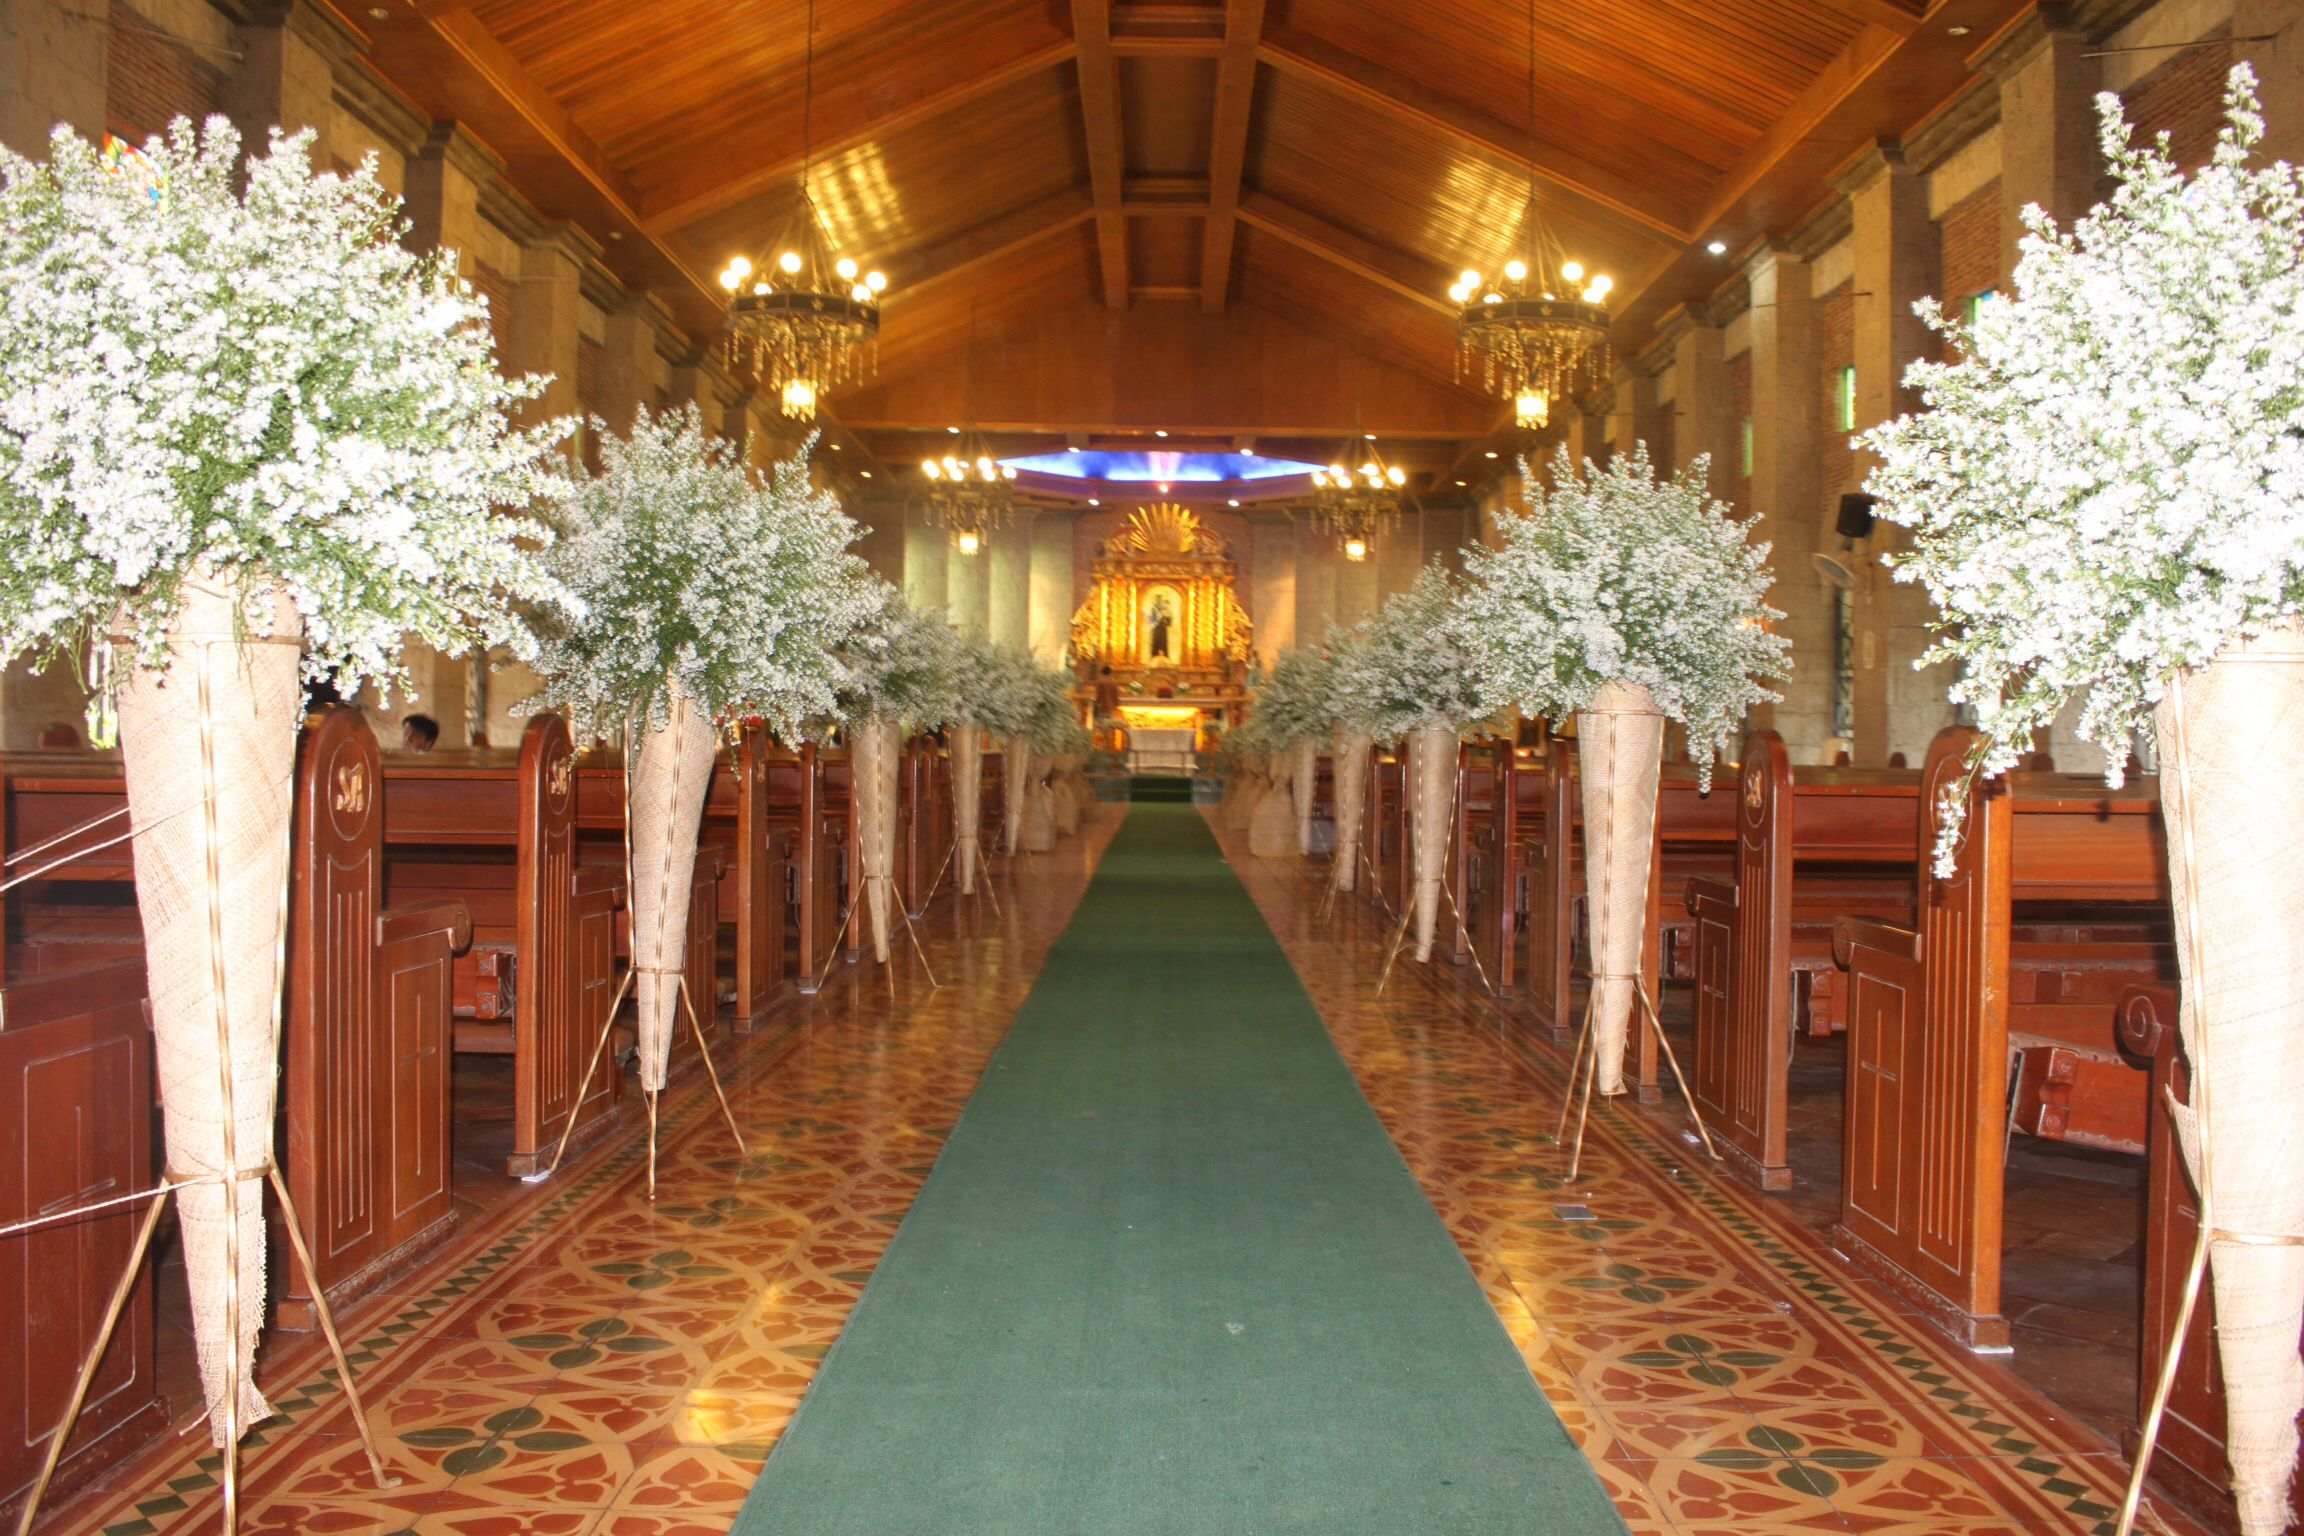 Aisle Arrangement Using Asters At San Antonio De Padua Church In